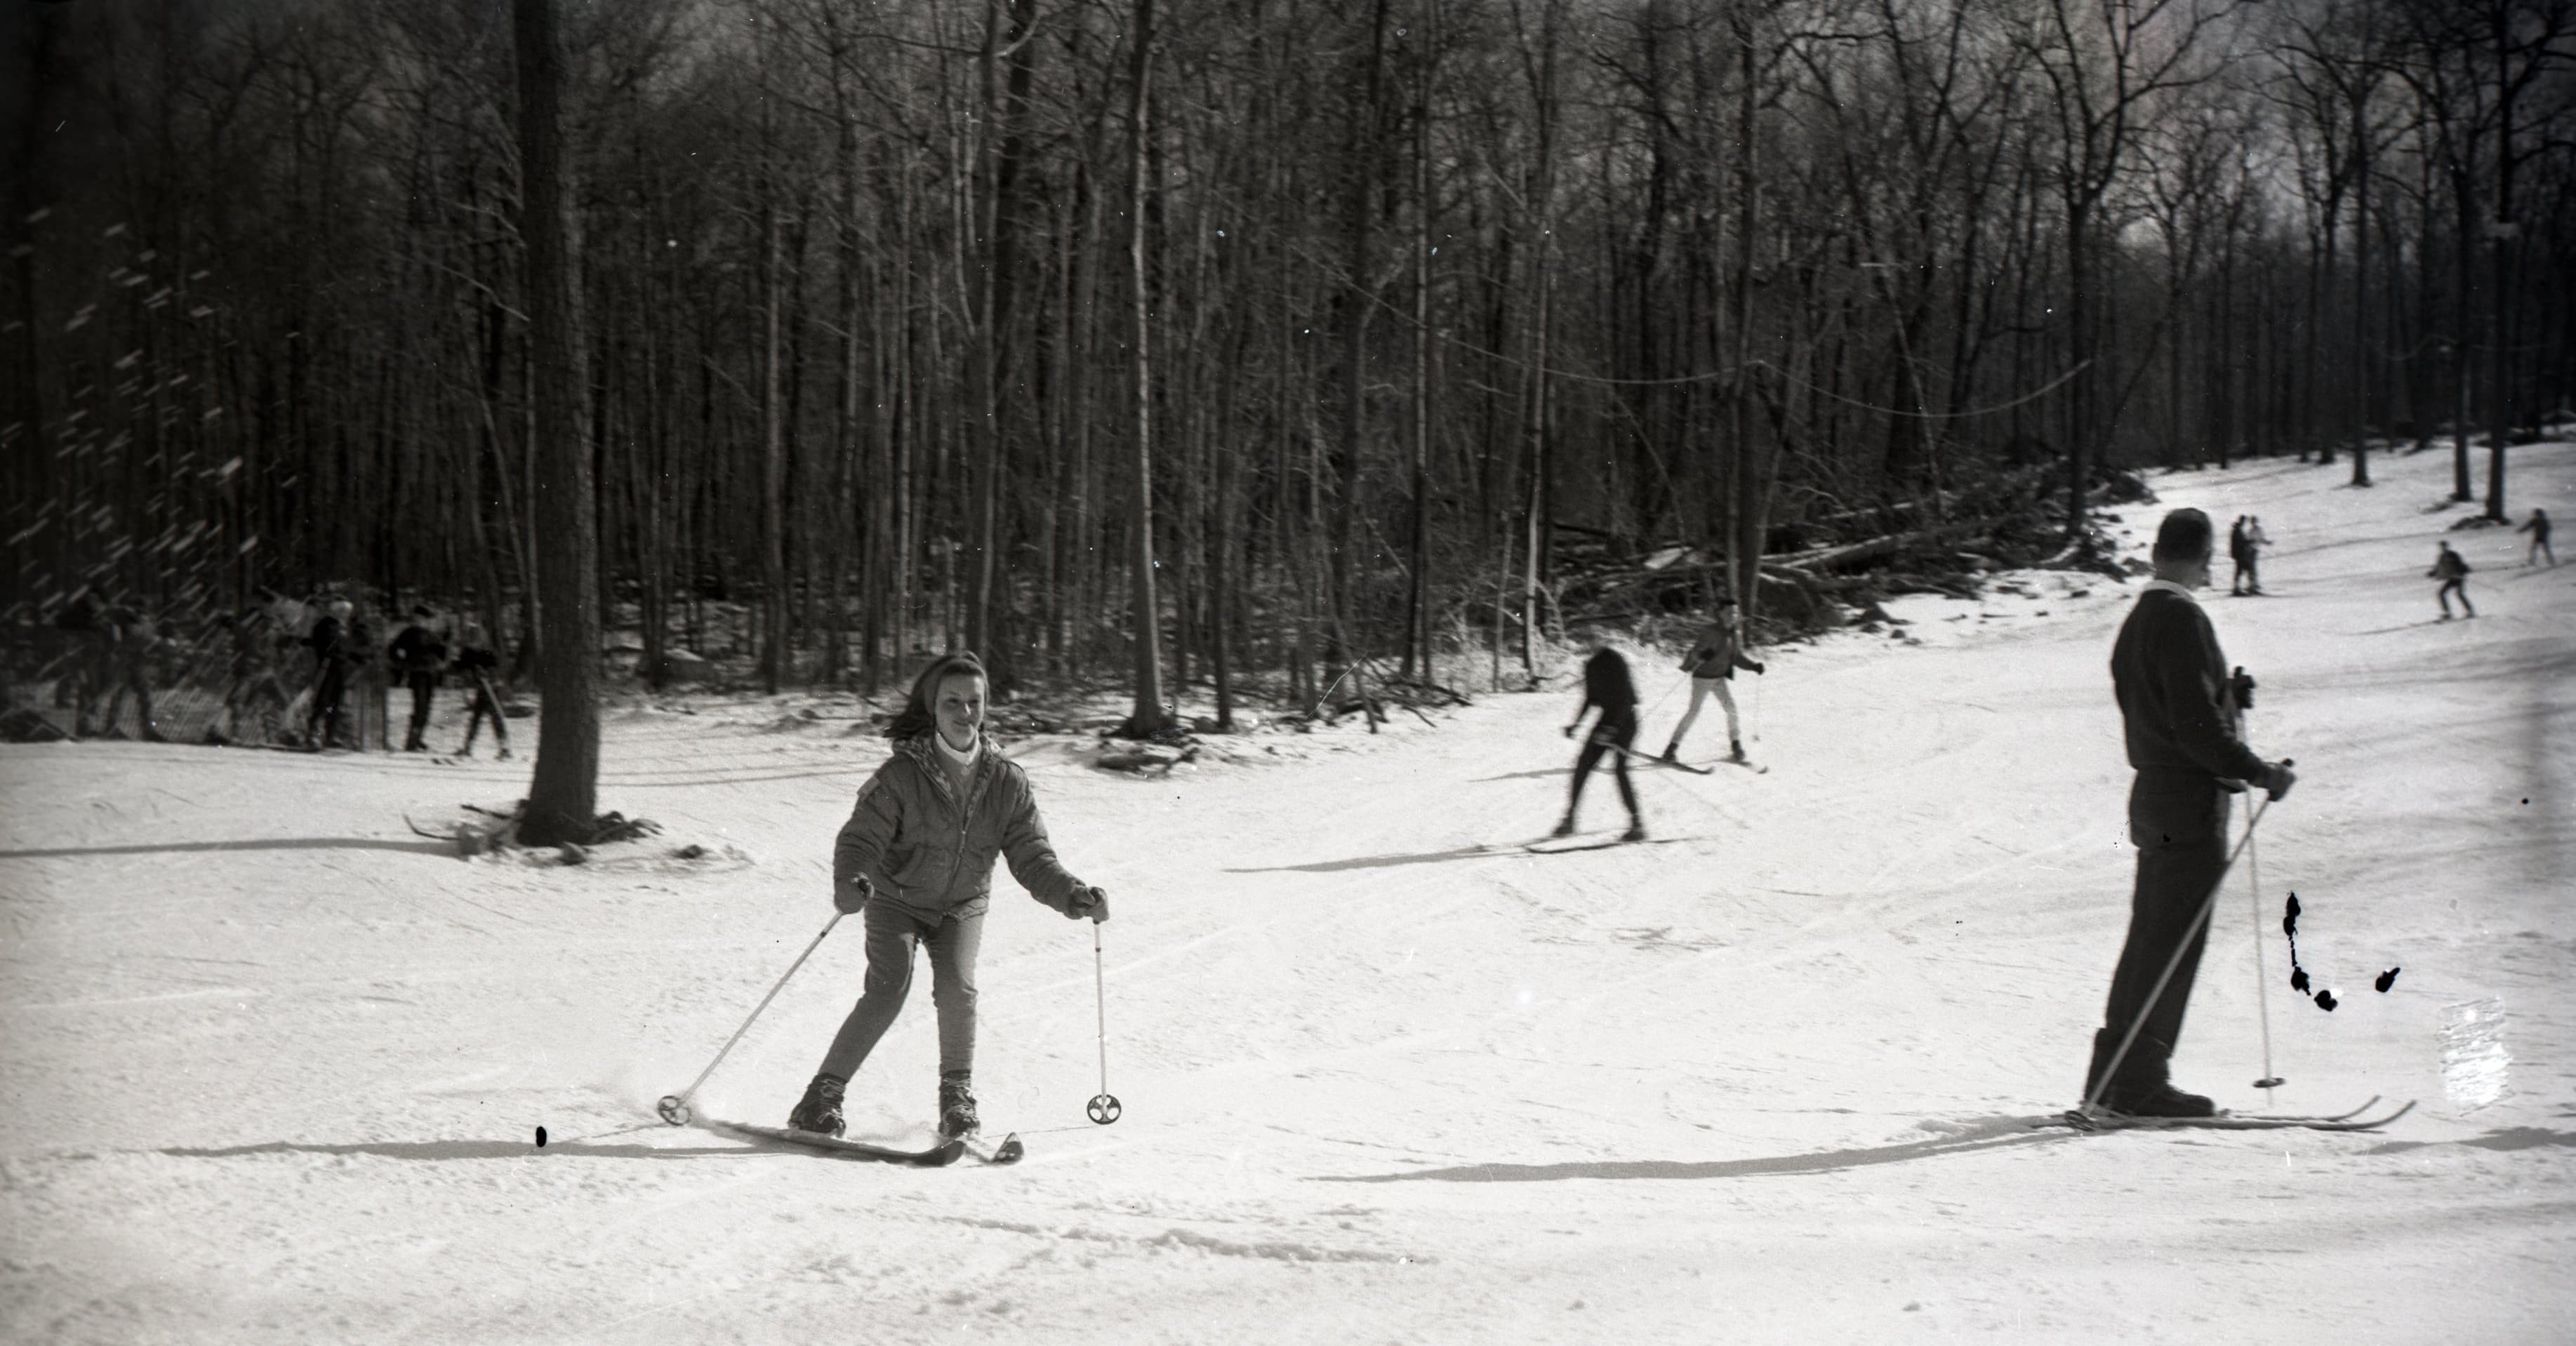 vintage photograph of a group of skiers on a slight hill